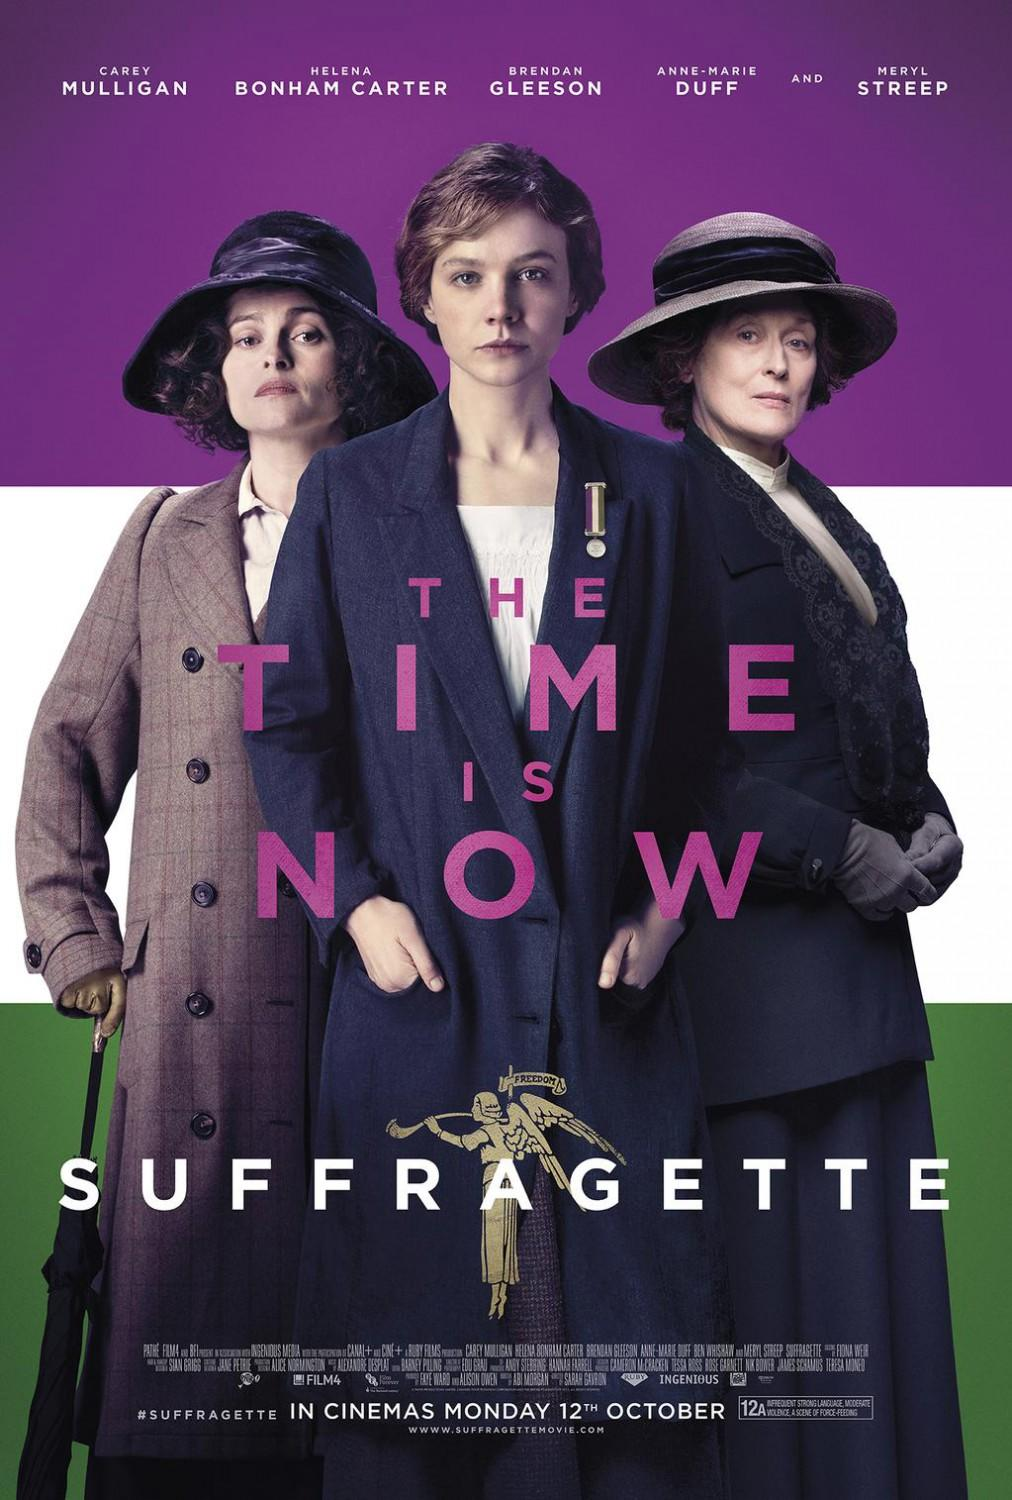 'Suffragette' tops bill as London film festival spotlights women's struggles